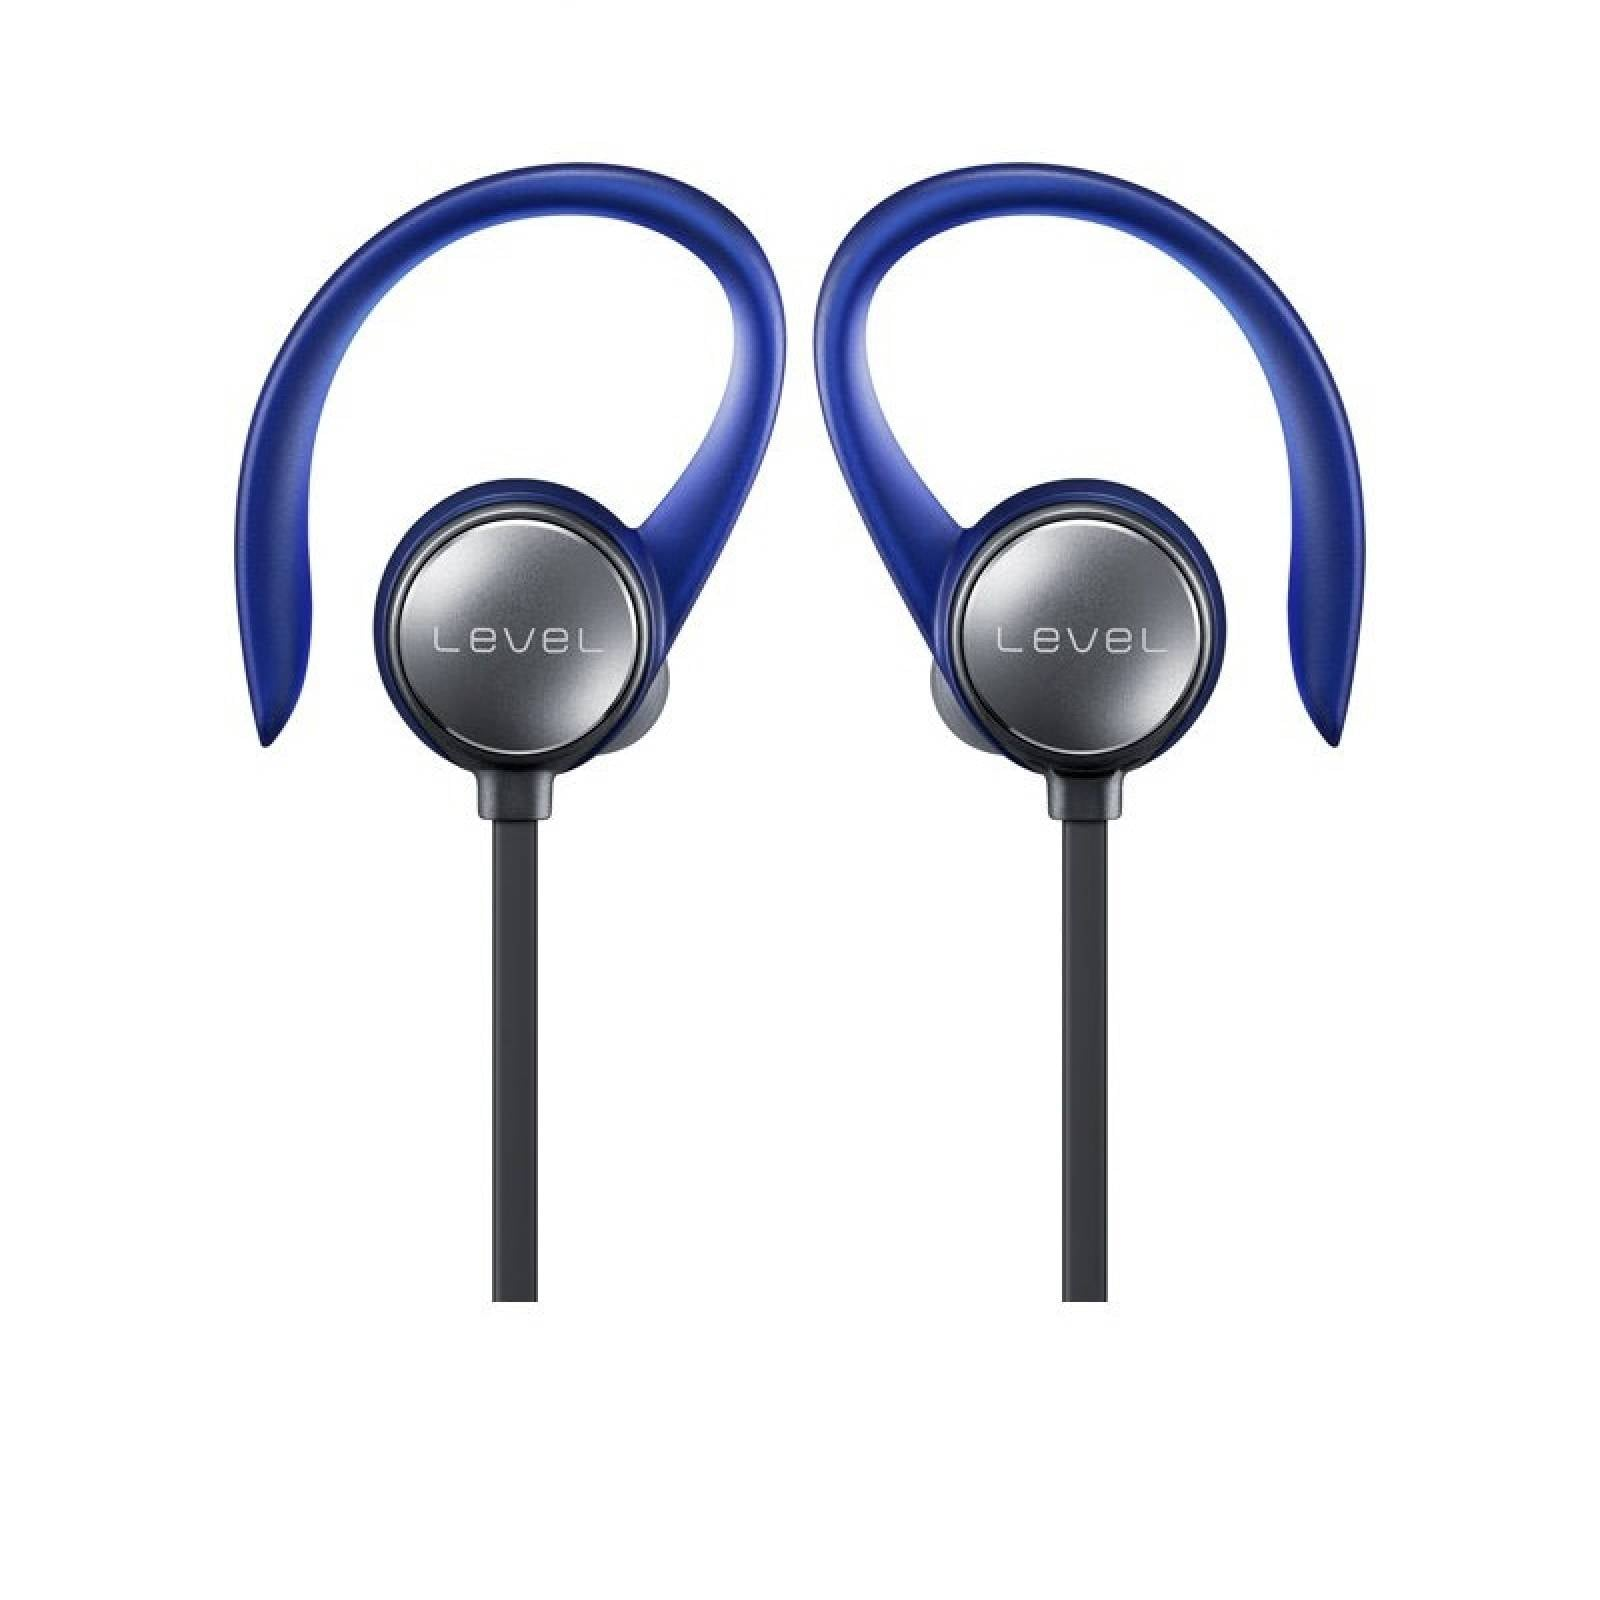 Manos Libres Samsung Bluetooth Audifonos Samsung Level Active Bluetooth Manos Libres